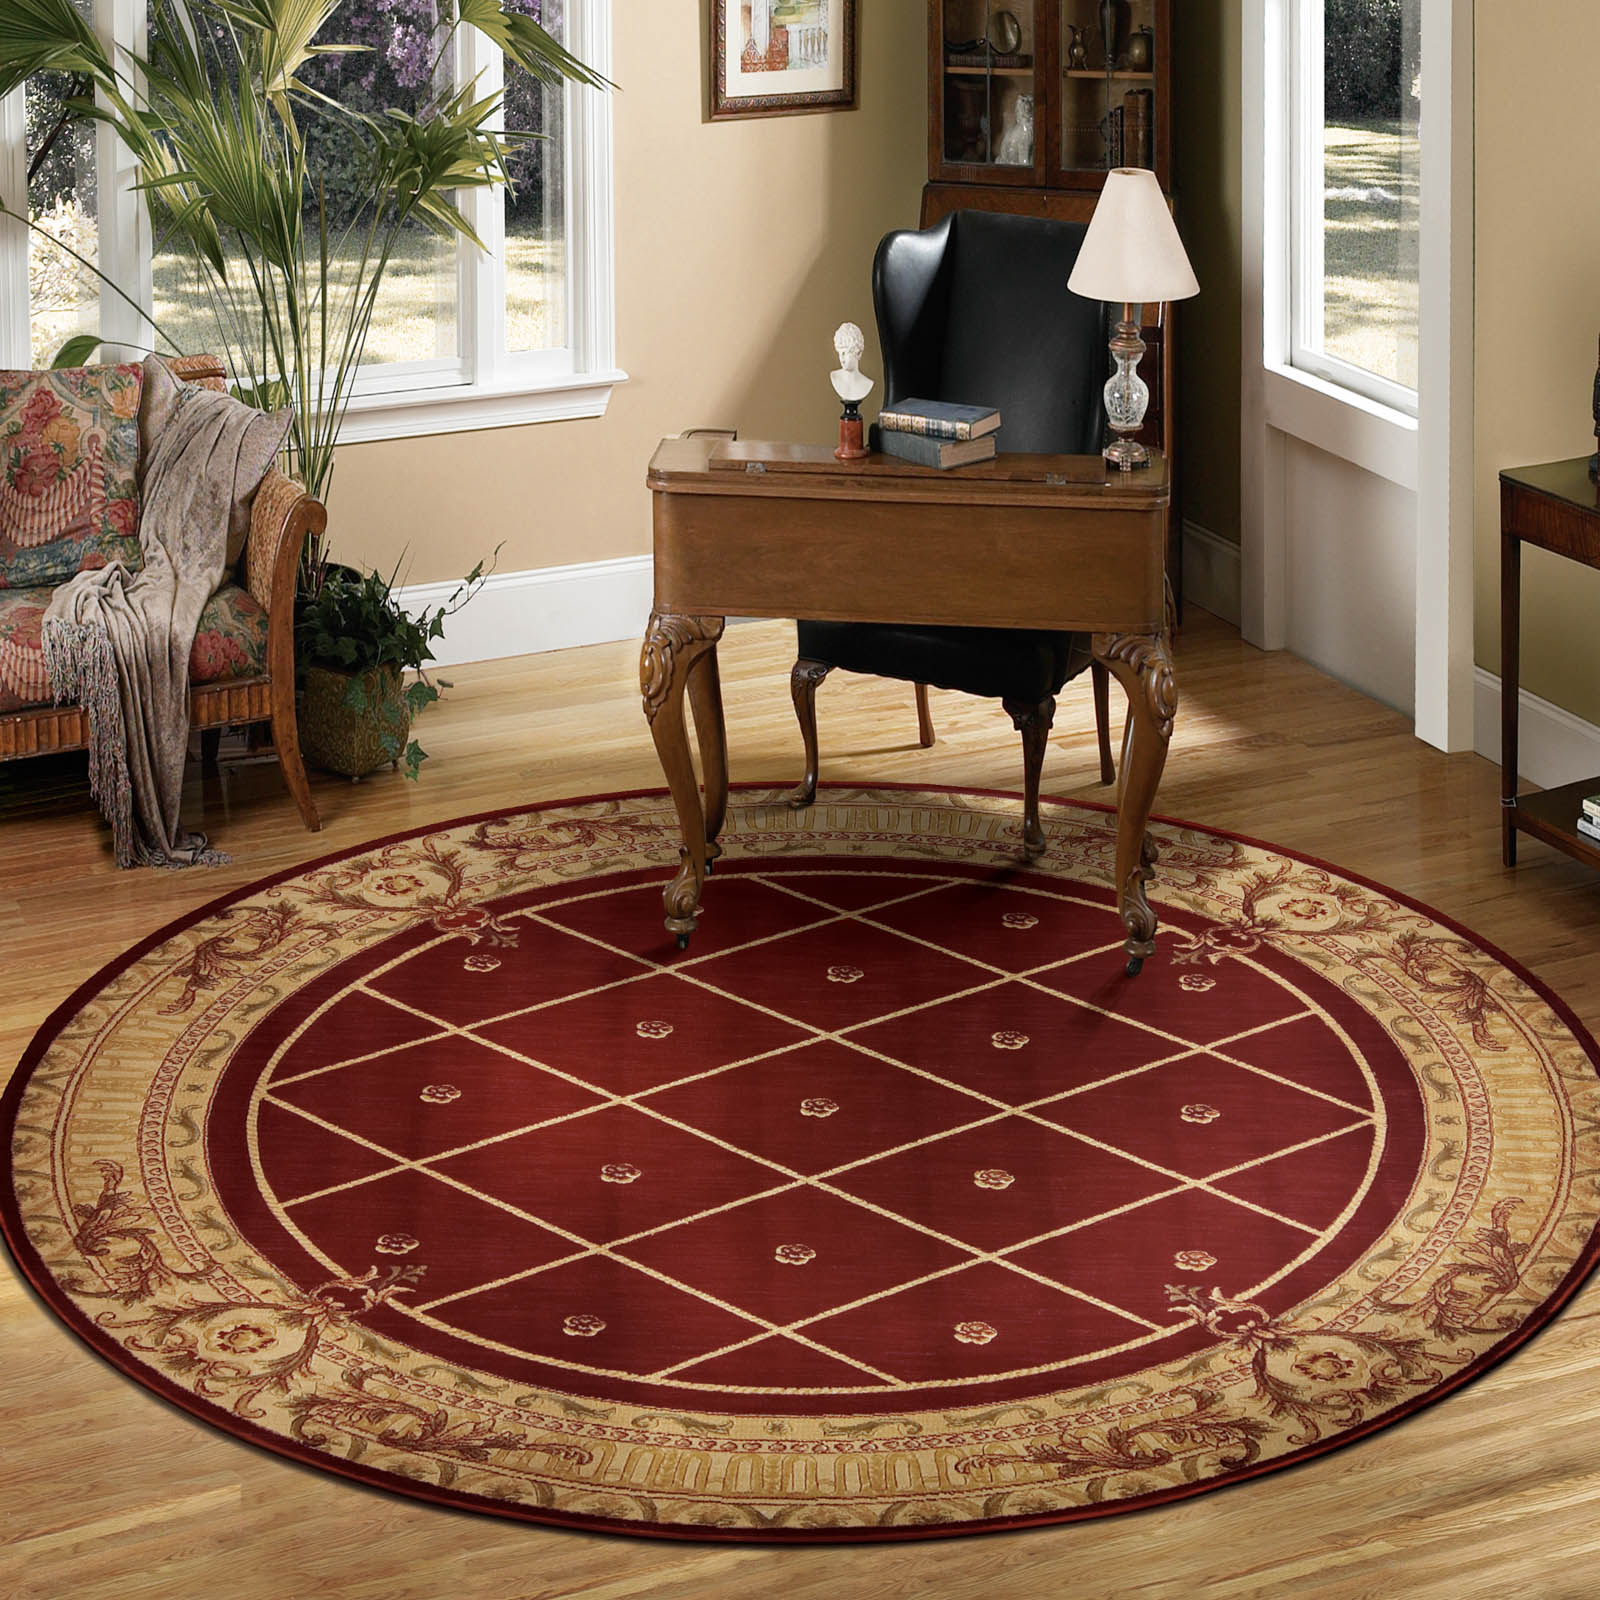 Ashton House Circular Rugs by Nourison AS03 Sienna